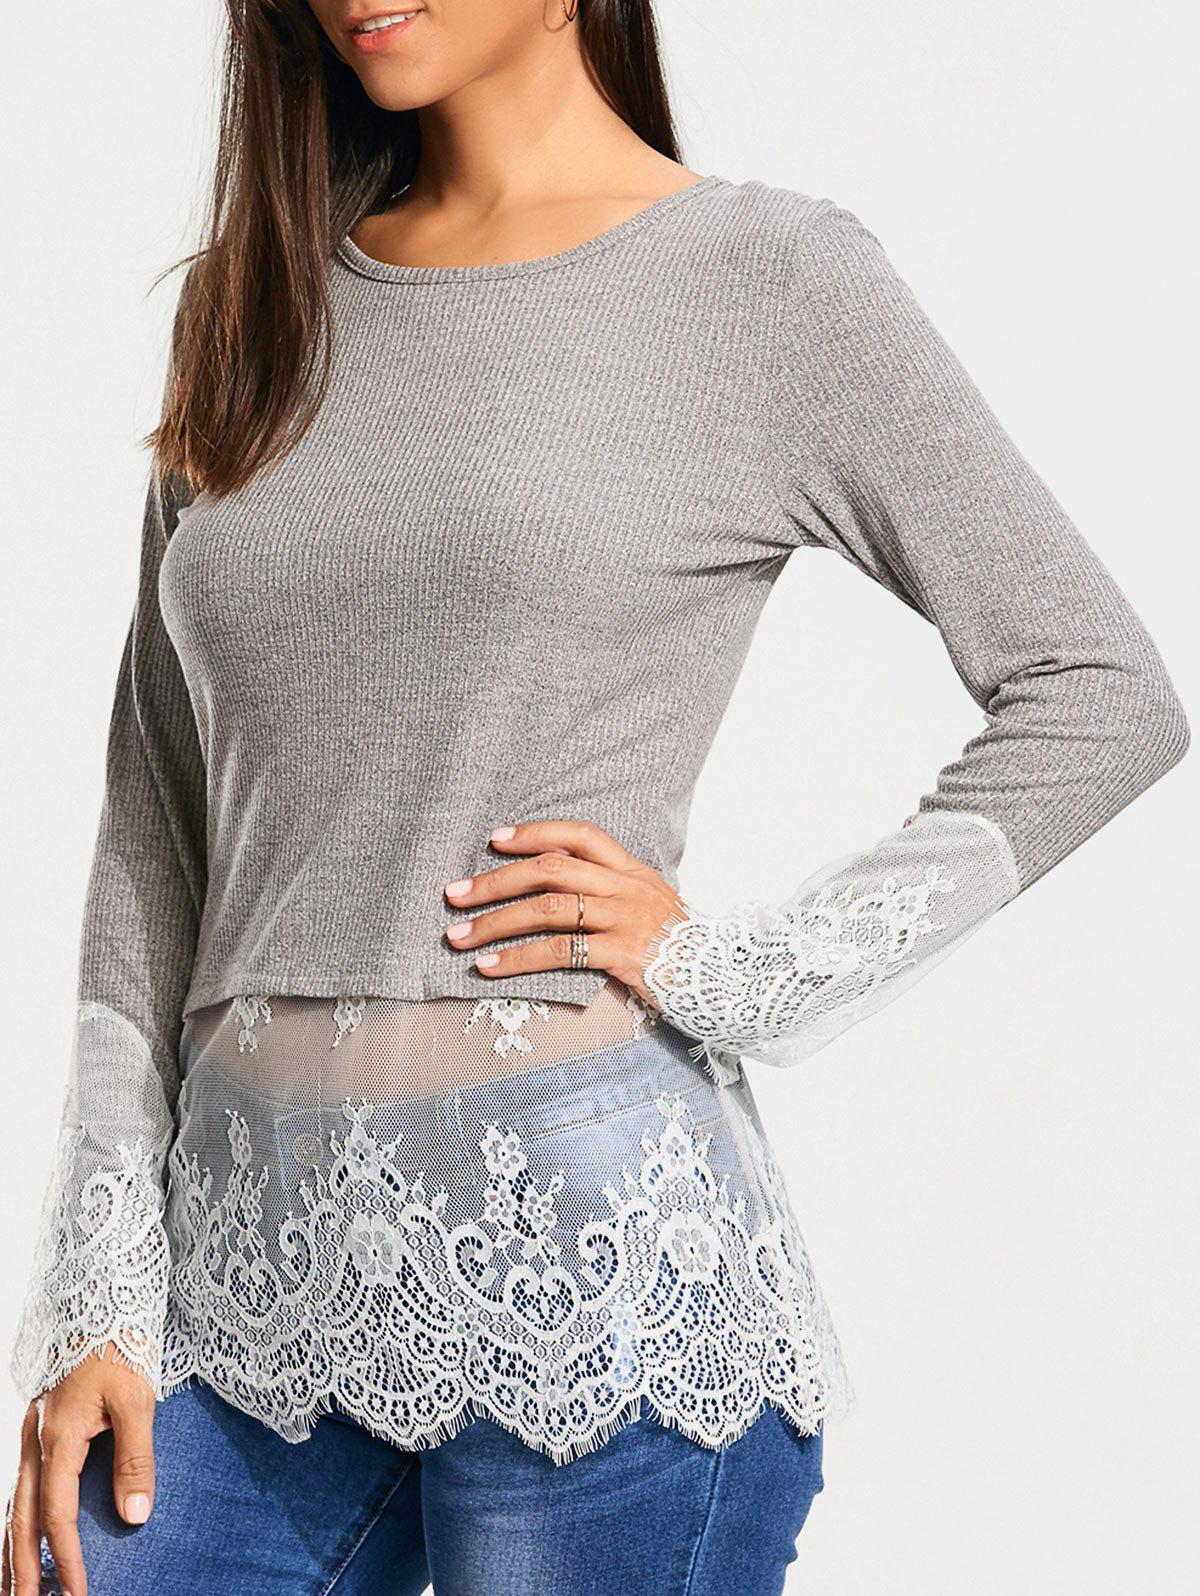 Lace Trim Casual Knit Top - GRAY 2XL